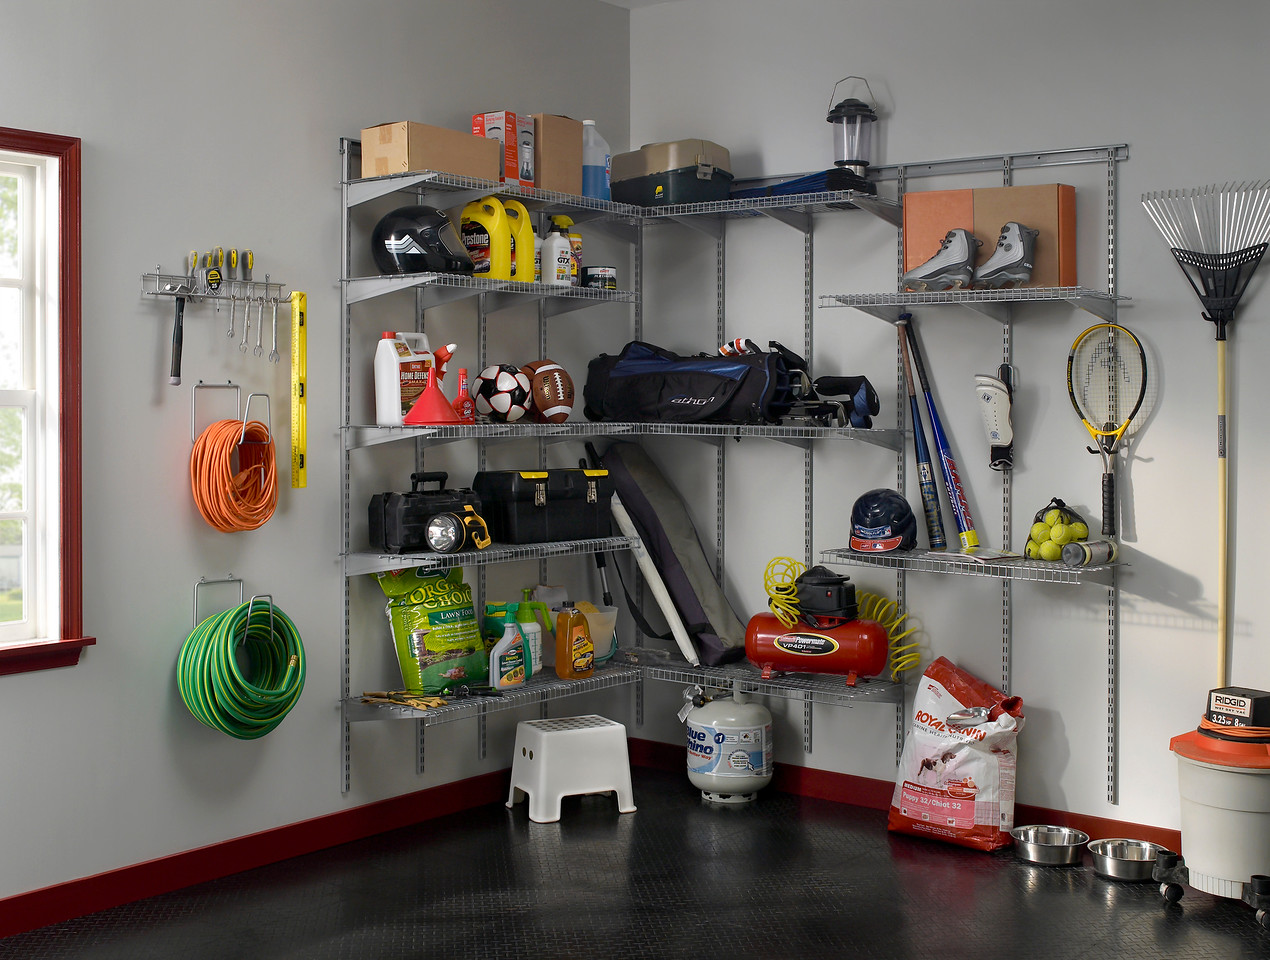 Garage storage area utilizing ClosetMaid Heavy Duty Wire Shelving in Satin Chrome